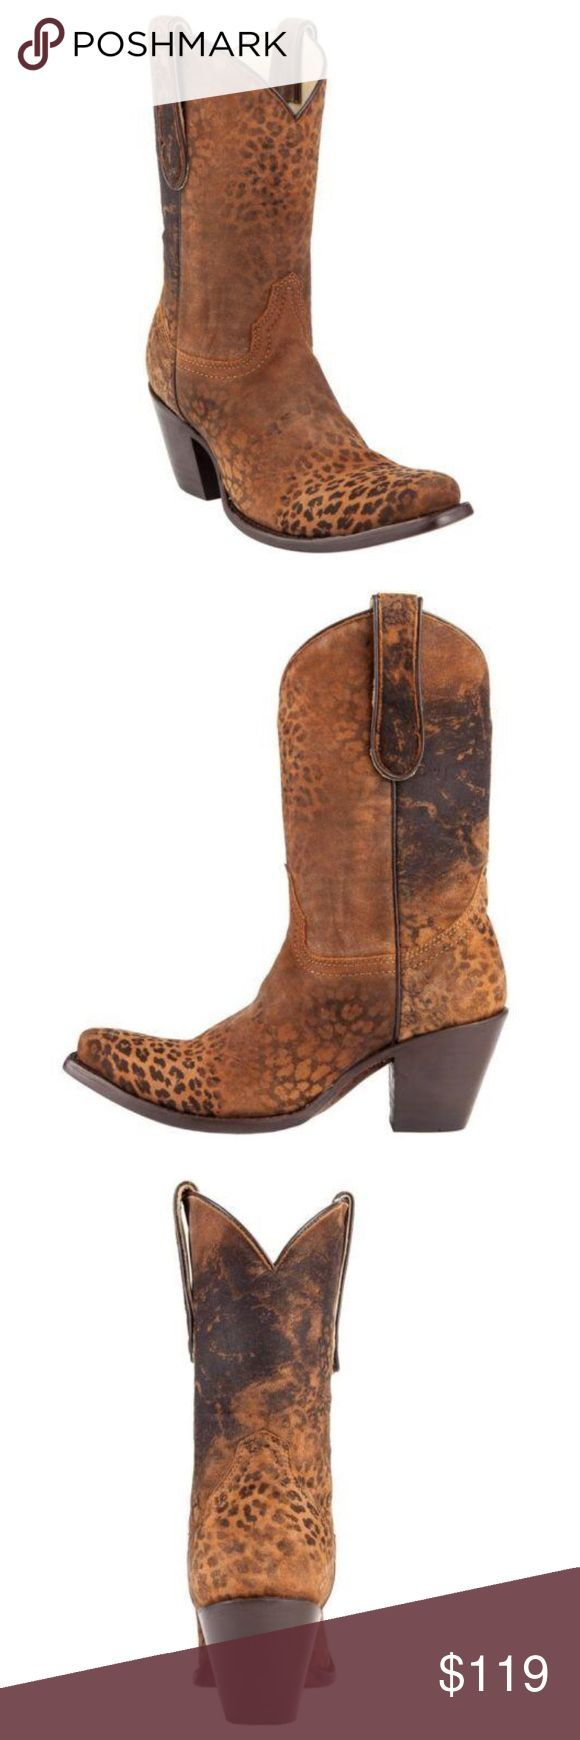 Corral Ladies Brown Cheetah Print Short Top Boot Only worn once for a work event…